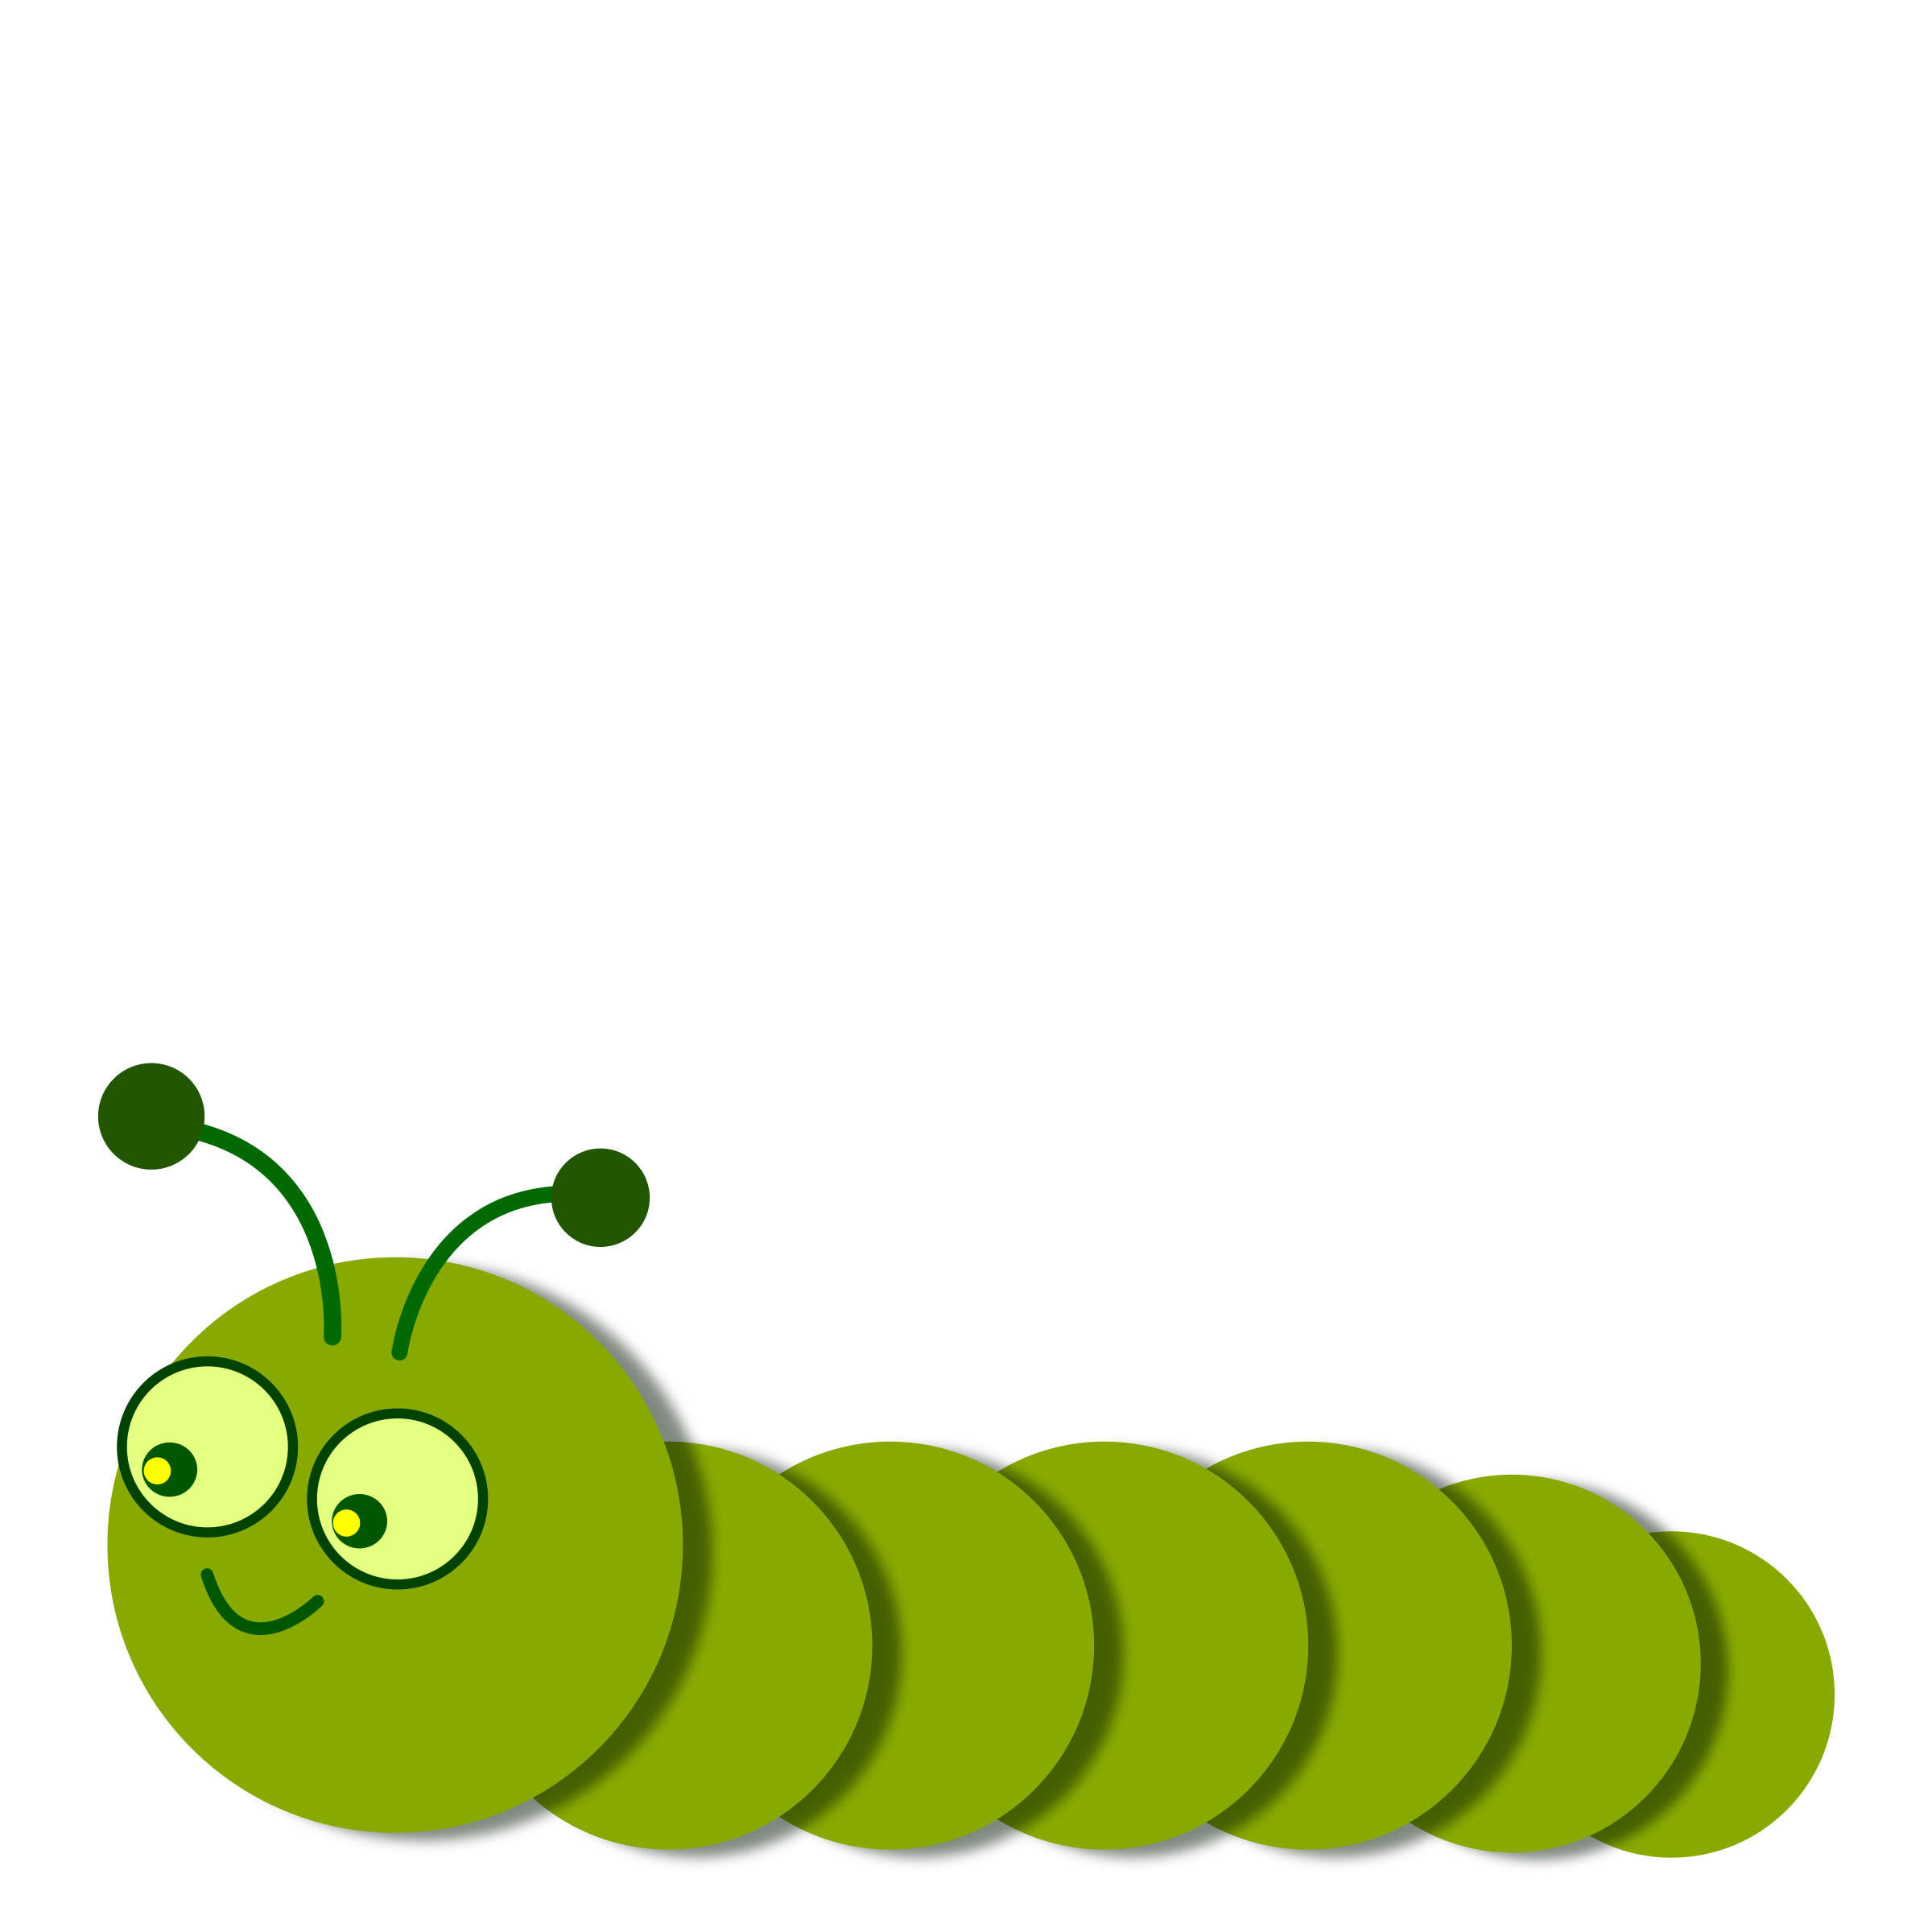 Caterpillar clipart png. Smiling legless linear icons